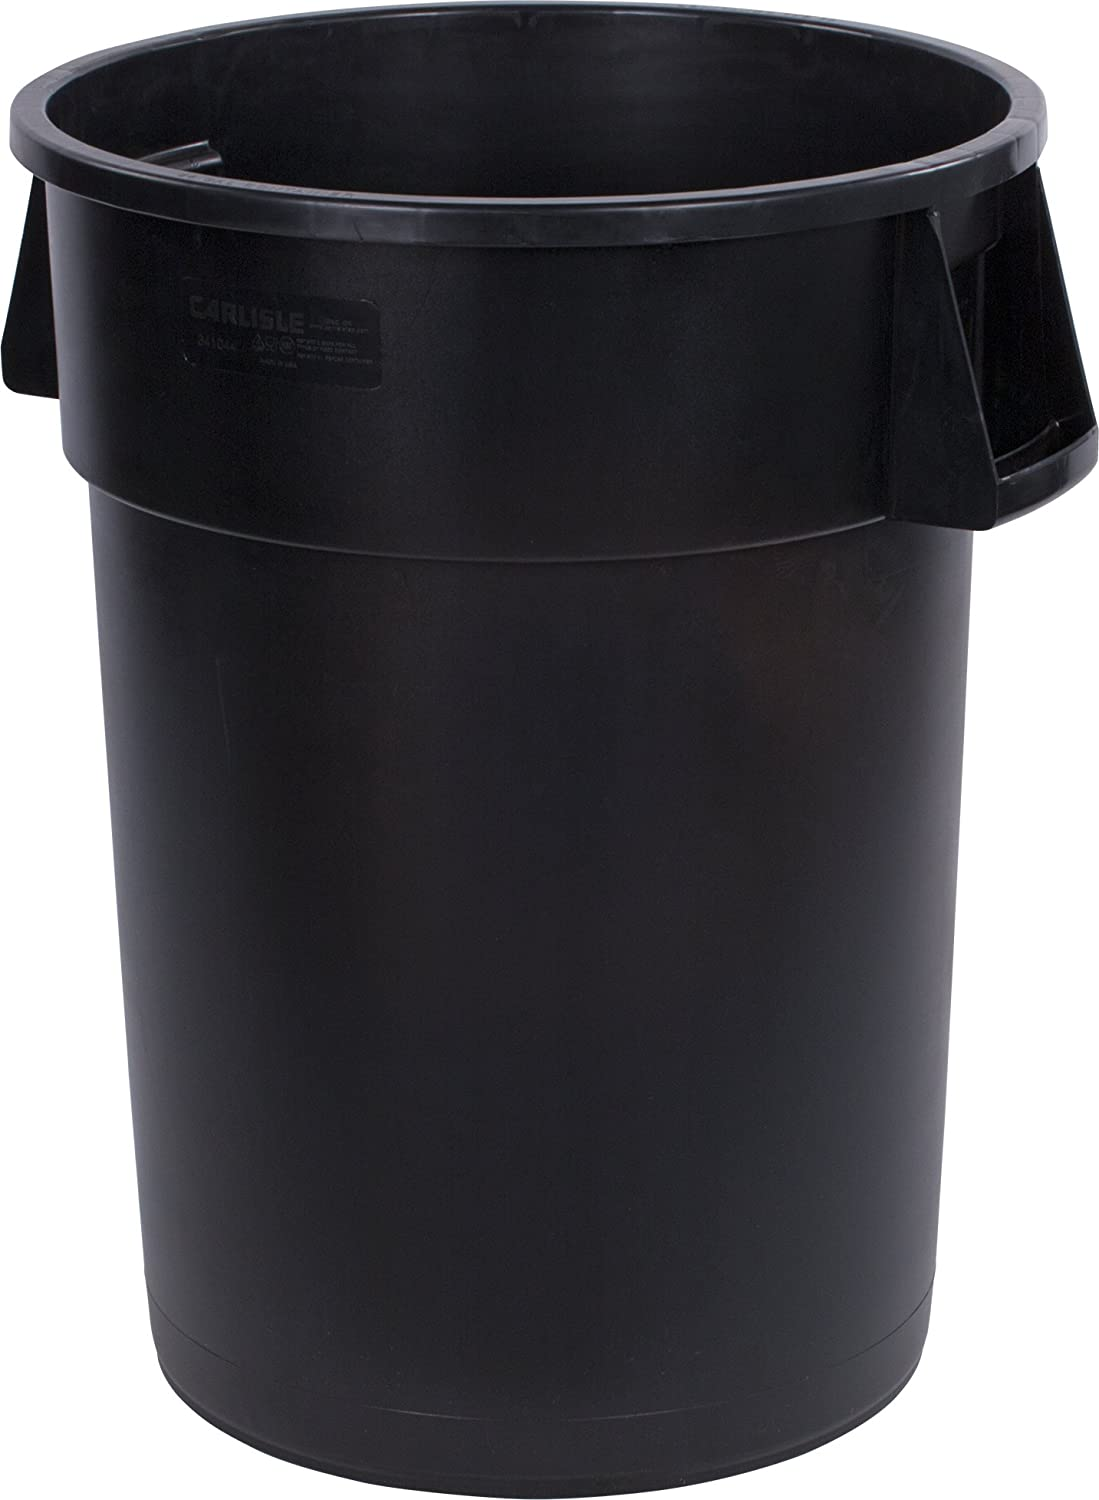 Max 73% OFF Carlisle 34104403 Round Waste Popular brand in the world gal 44 Black Container